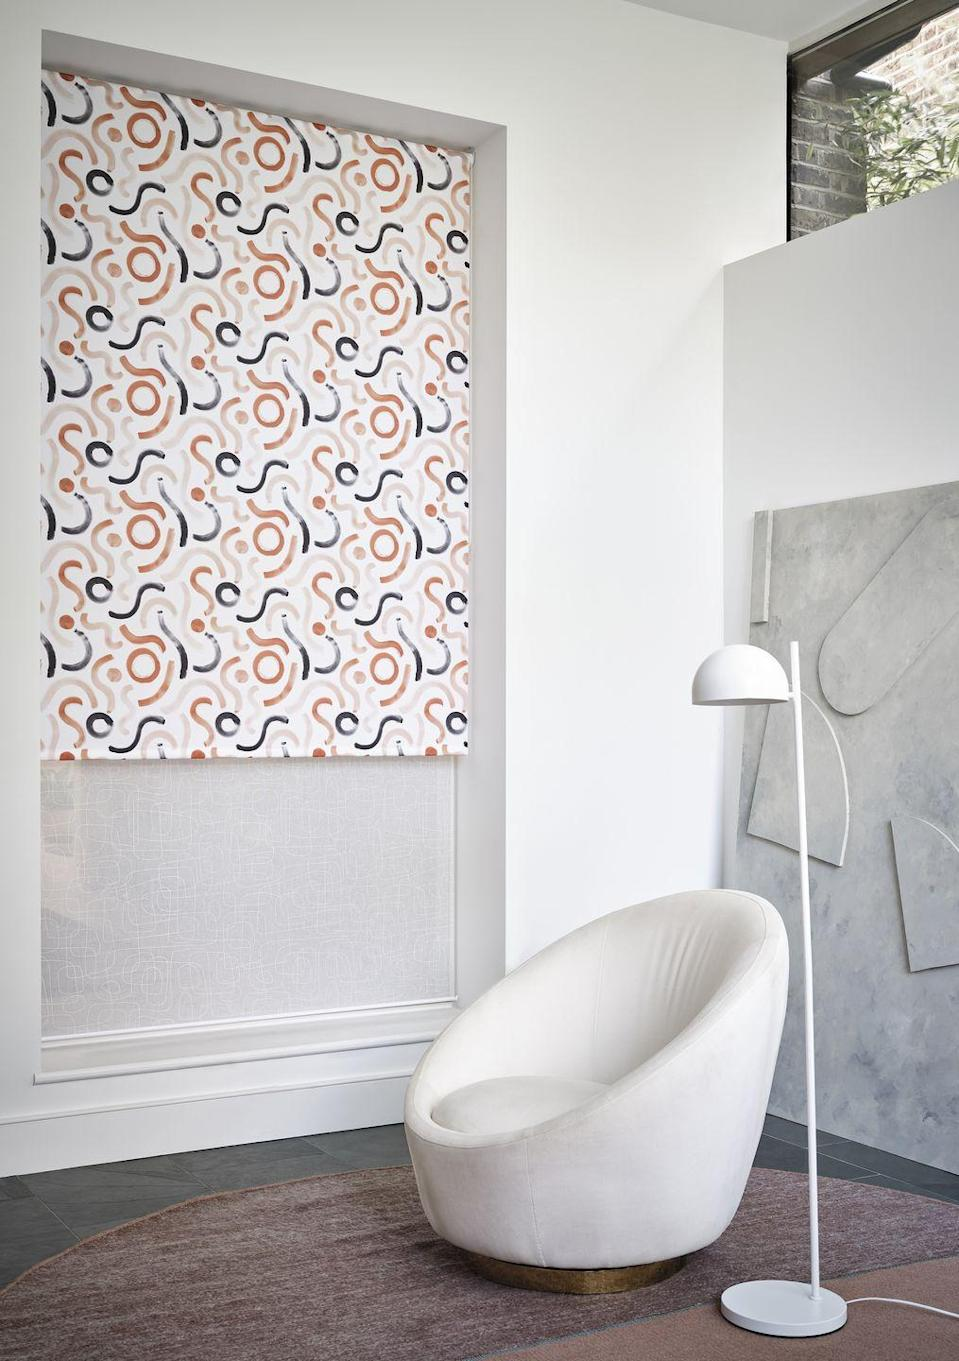 "<p>Speaking of layering, Namah Mist and Doodle Jaffa have both been used here for a tailored look. Doodle Jaffa is a fun, fresh fabric that's a little bit retro. The thick, swirly watercolour effect brushstrokes in tonal orange and grey will bring an energised quality to a room for an instant uplift. </p><p><a class=""link rapid-noclick-resp"" href=""https://www.hillarys.co.uk/products/doodle-jaffa-roller-blind/"" rel=""nofollow noopener"" target=""_blank"" data-ylk=""slk:Order a sample and request an appointment"">Order a sample and request an appointment</a></p>"